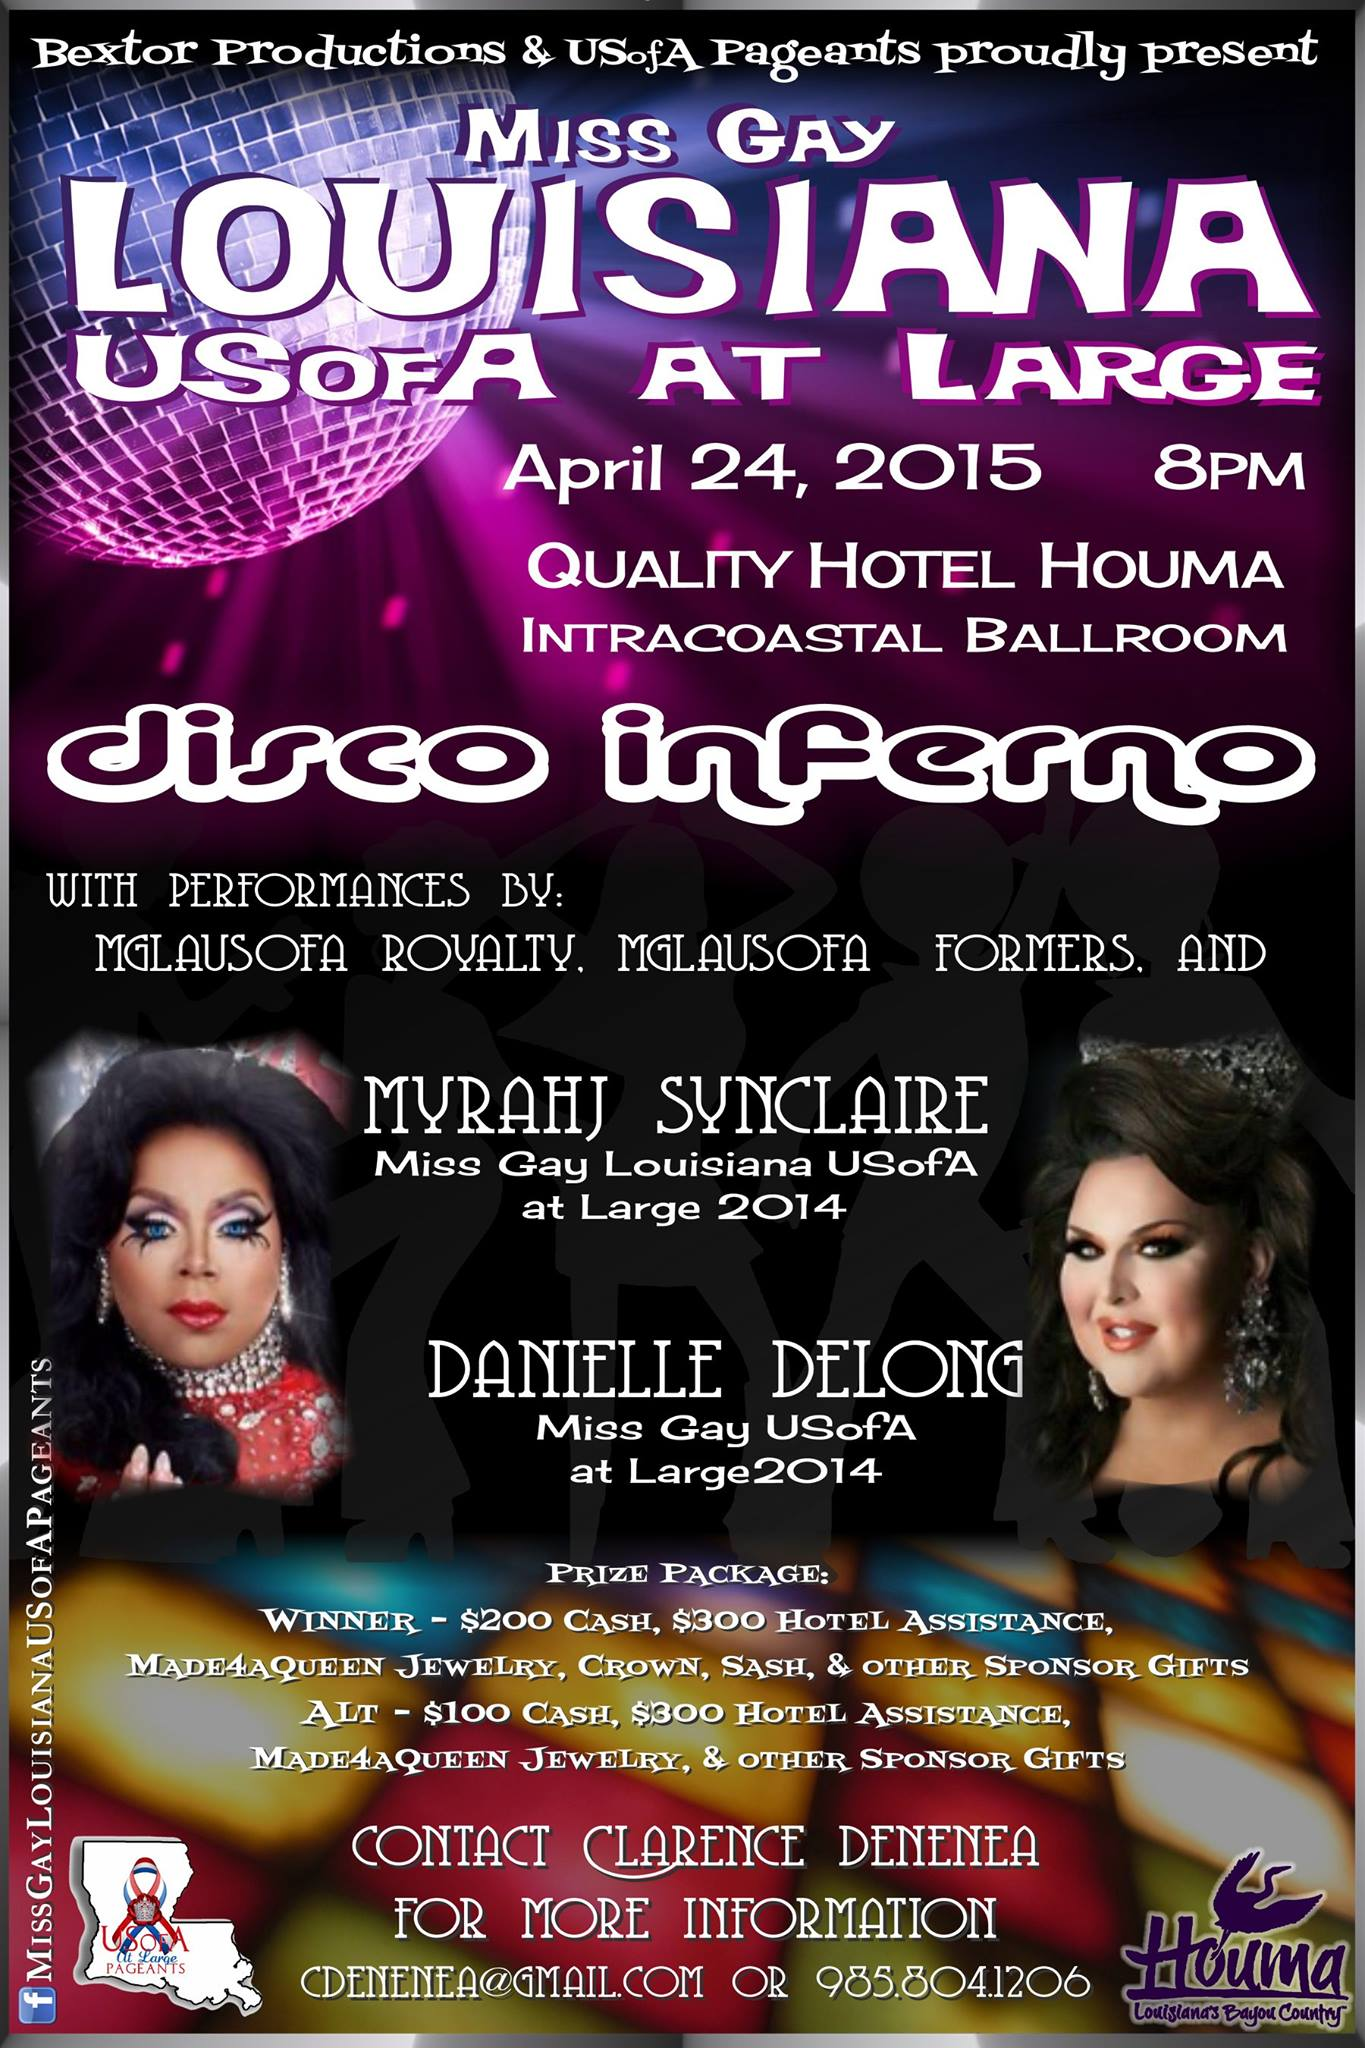 Show Ad | Miss Gay Louisiana at Large | Quality Hotel (Houma, Louisiana) | 4/24/2015